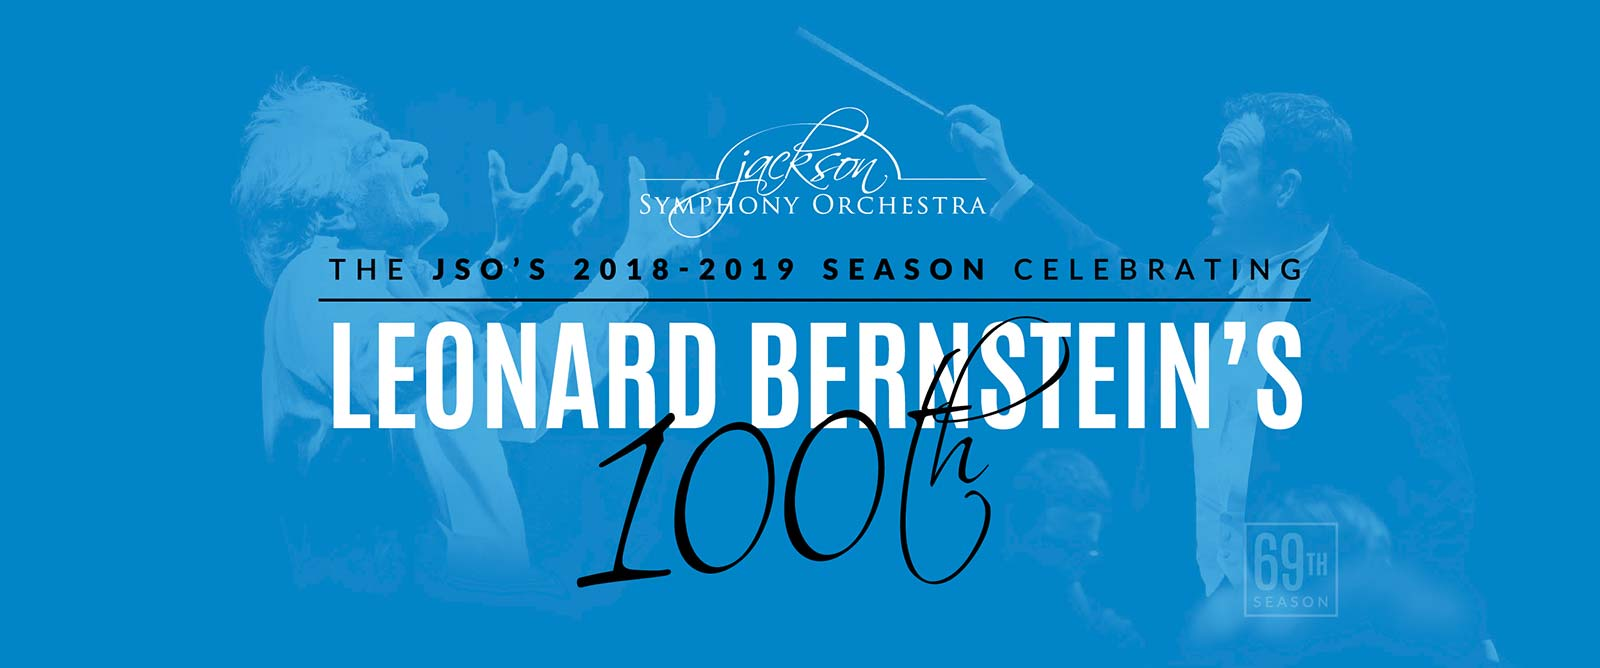 JSO Season Leonard Bernsteins 100th